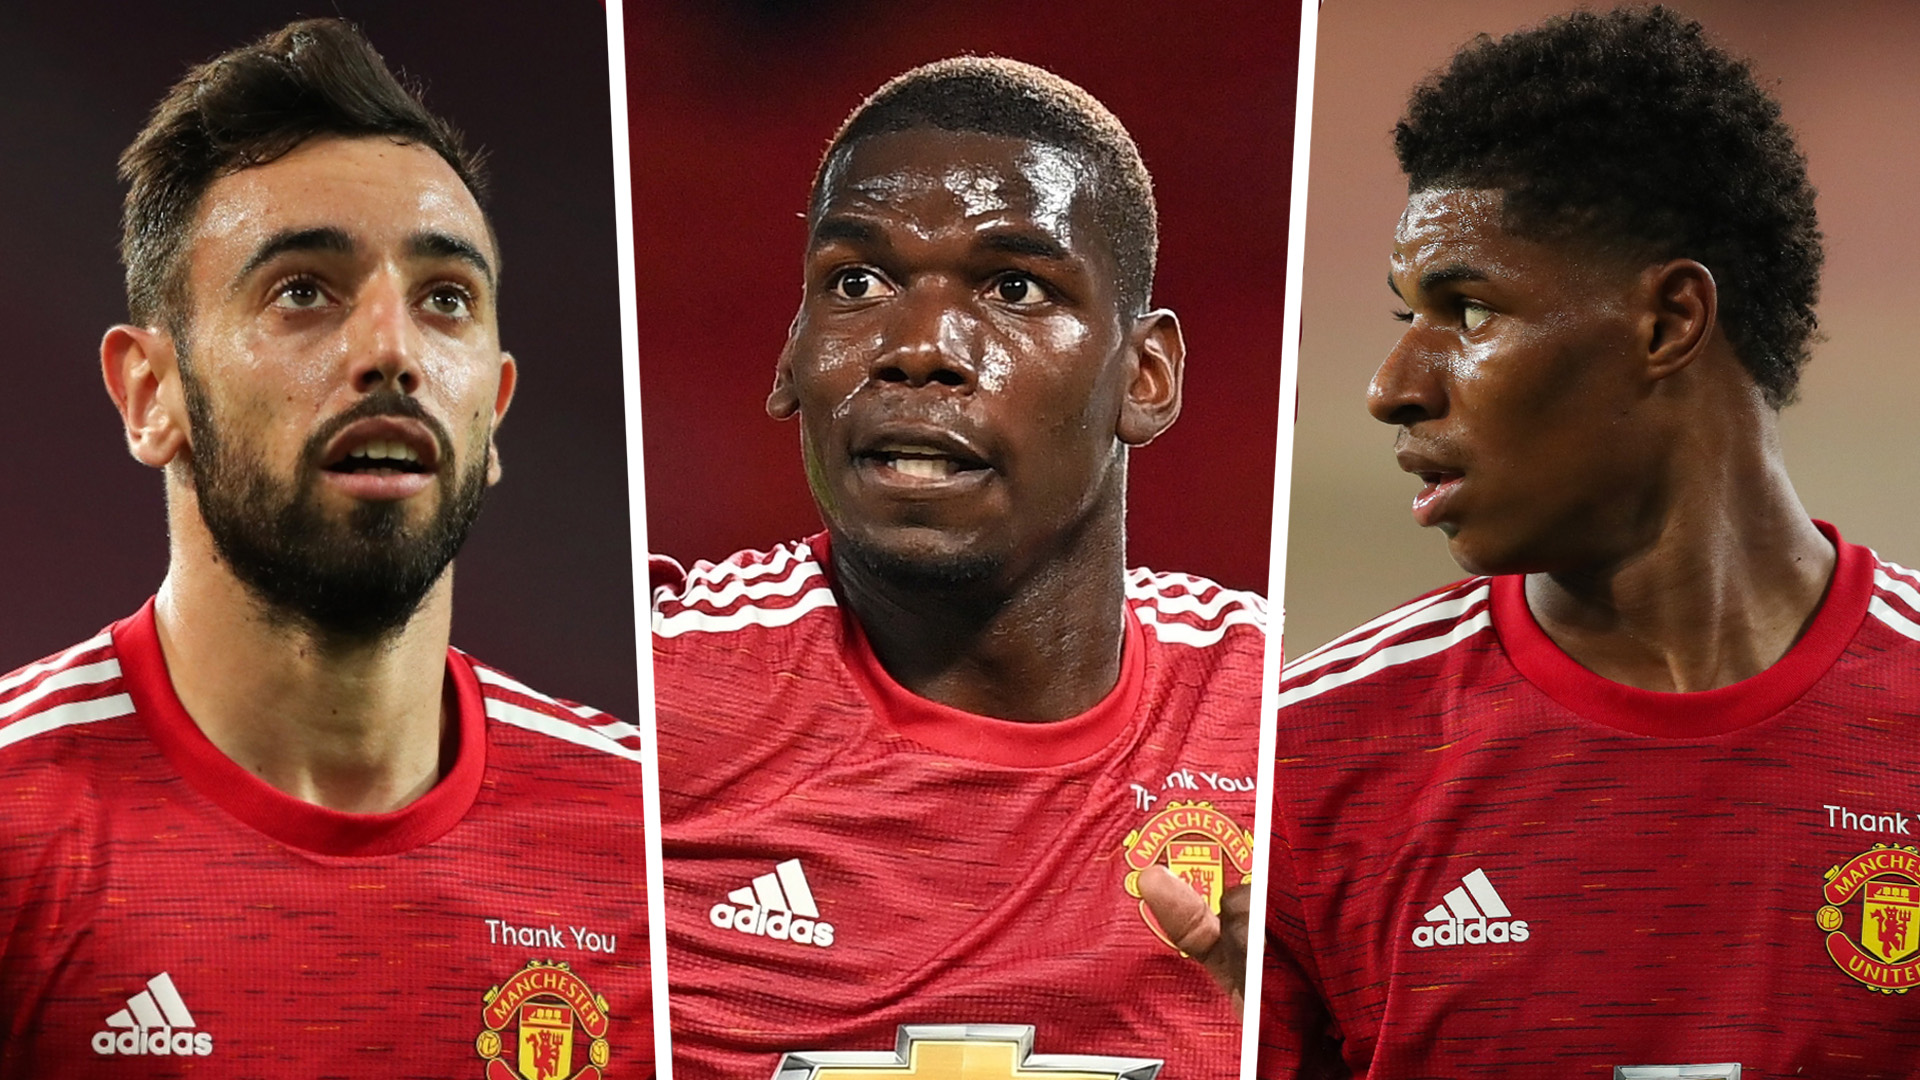 rashford goes for bruno pogba selects himself as man utd stars reveal their fantasy premier league picks goal com rashford goes for bruno pogba selects